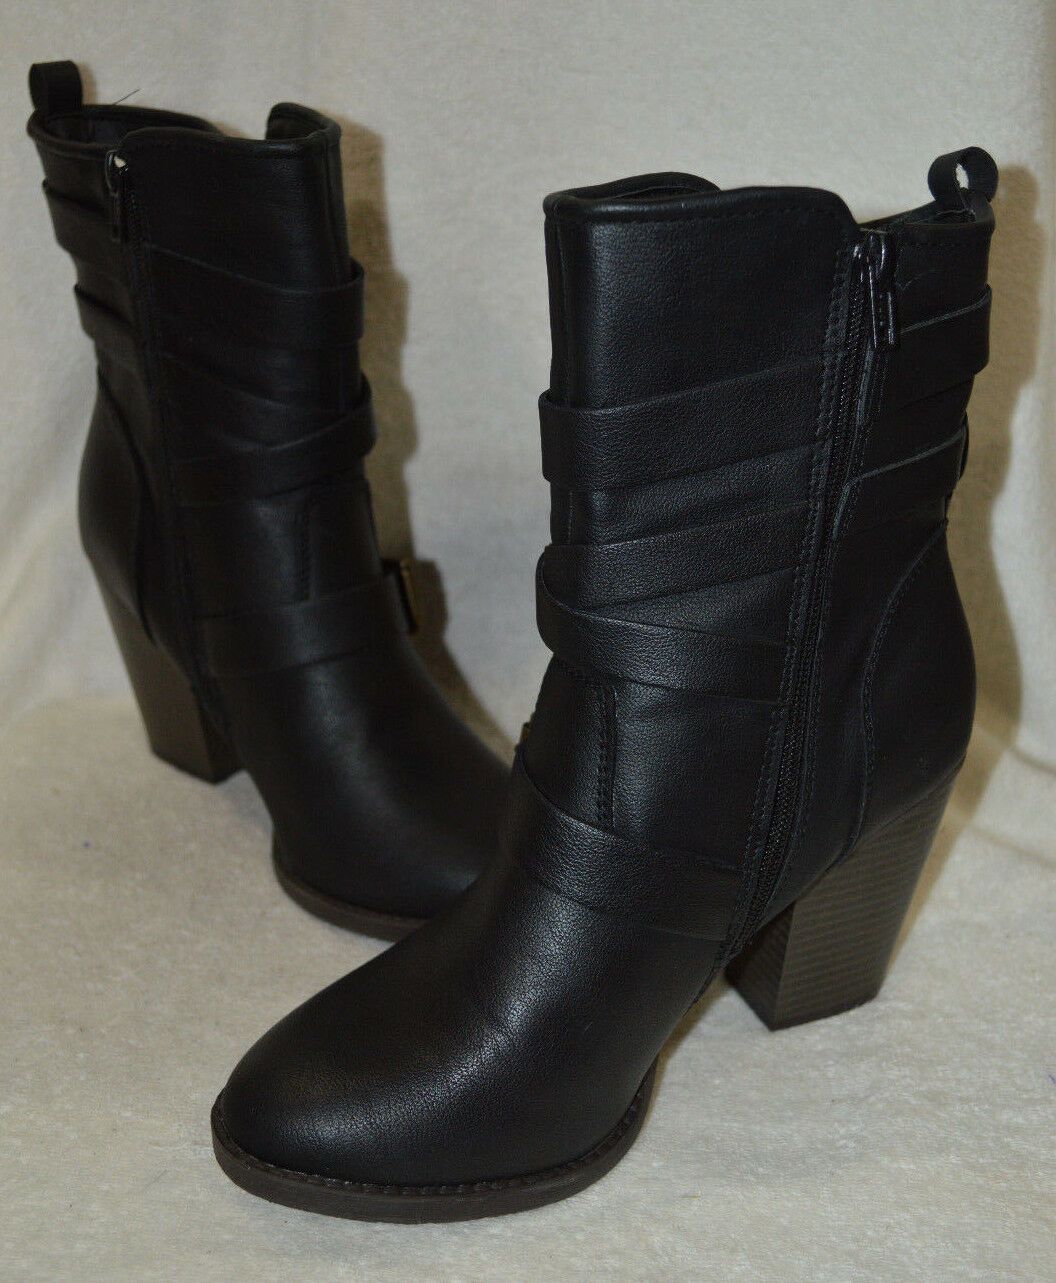 Candies Women's Fiji Black Fashion Ankle Boots - Size 10